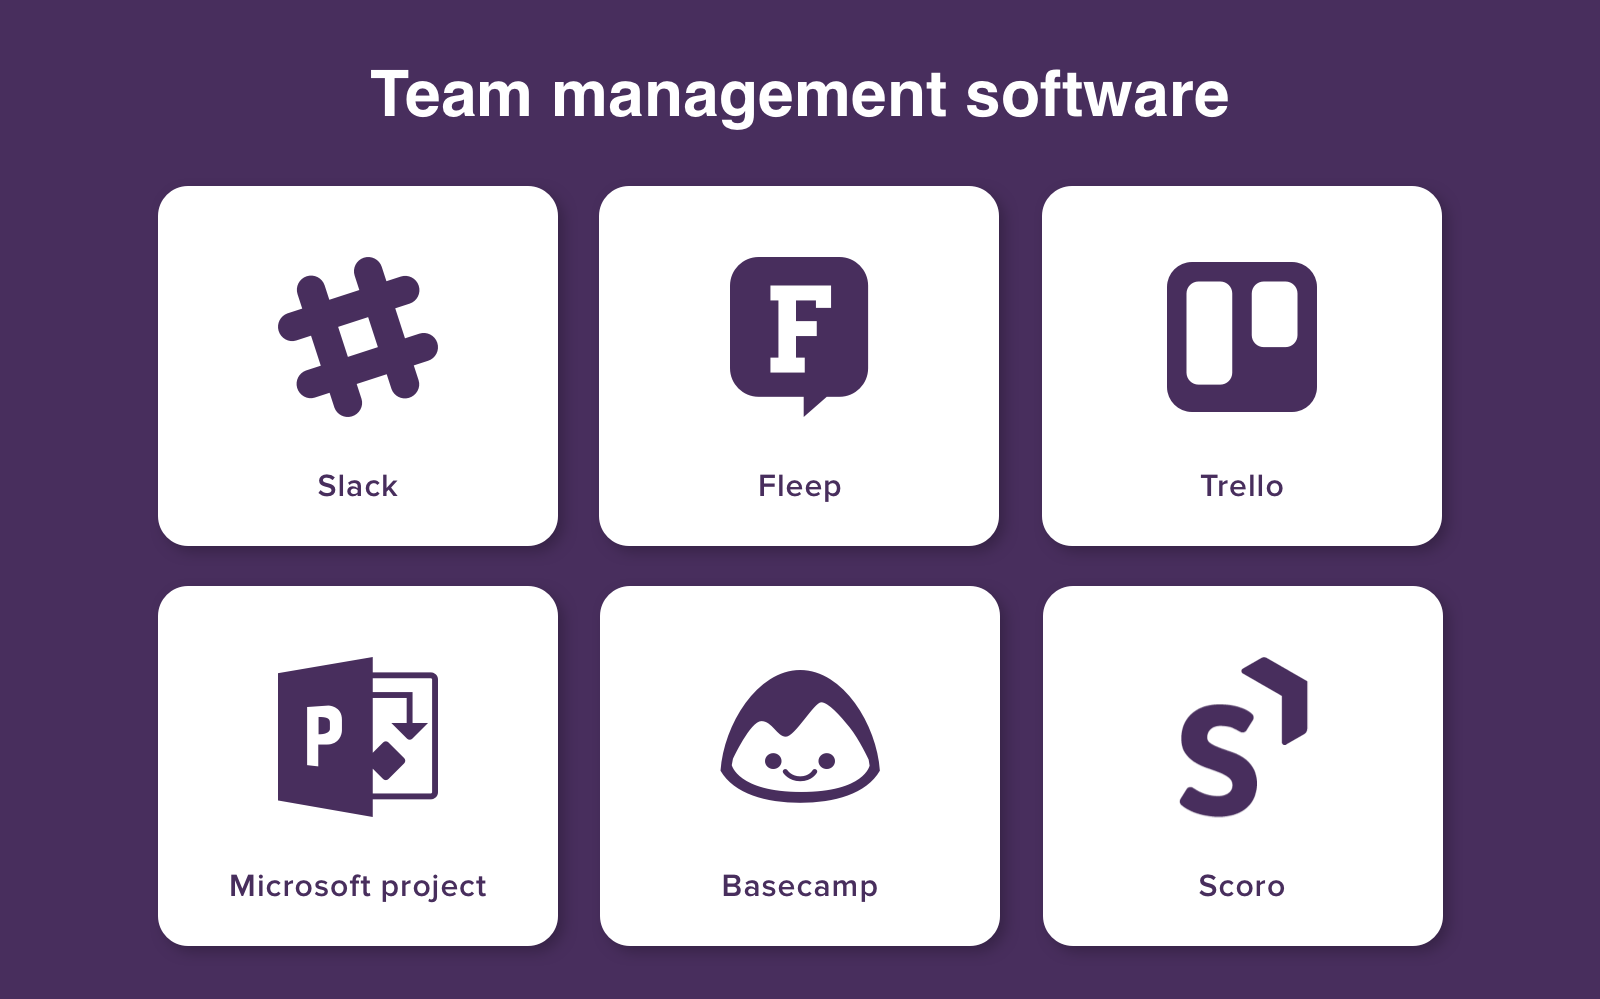 Team management software